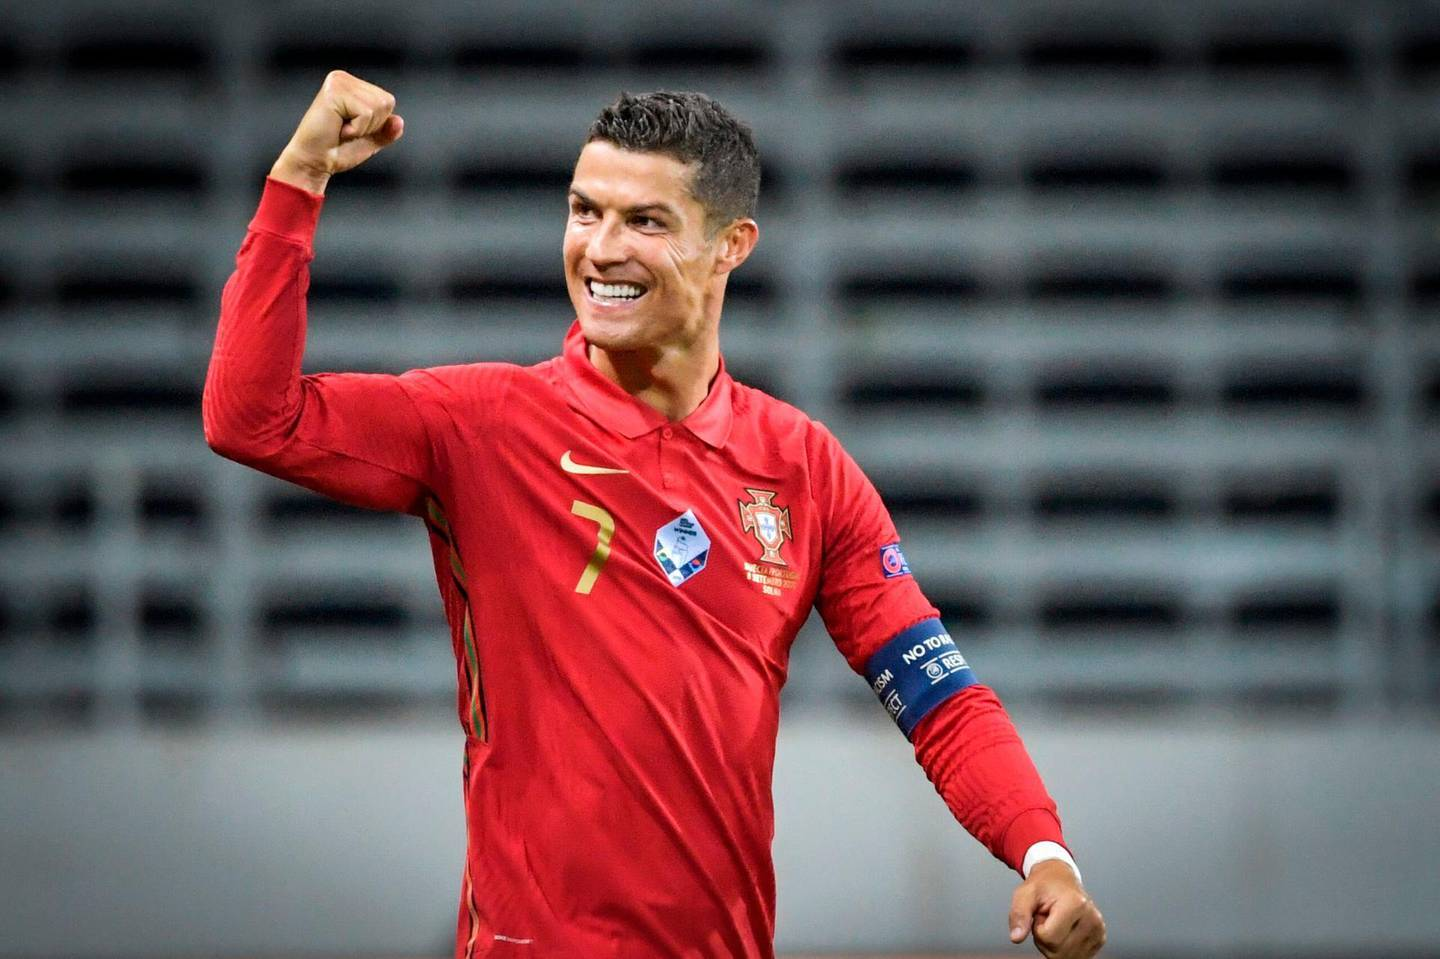 TOPSHOT - Portugal's forward Cristiano Ronaldo celebrates scoring the opening goal, his 100th goal for Portugal, during the UEFA Nations League football match between Sweden and Portugal on September 8, 2020 in Solna, Sweden.  - Sweden OUT  / AFP / TT NEWS AGENCY / Janerik HENRIKSSON